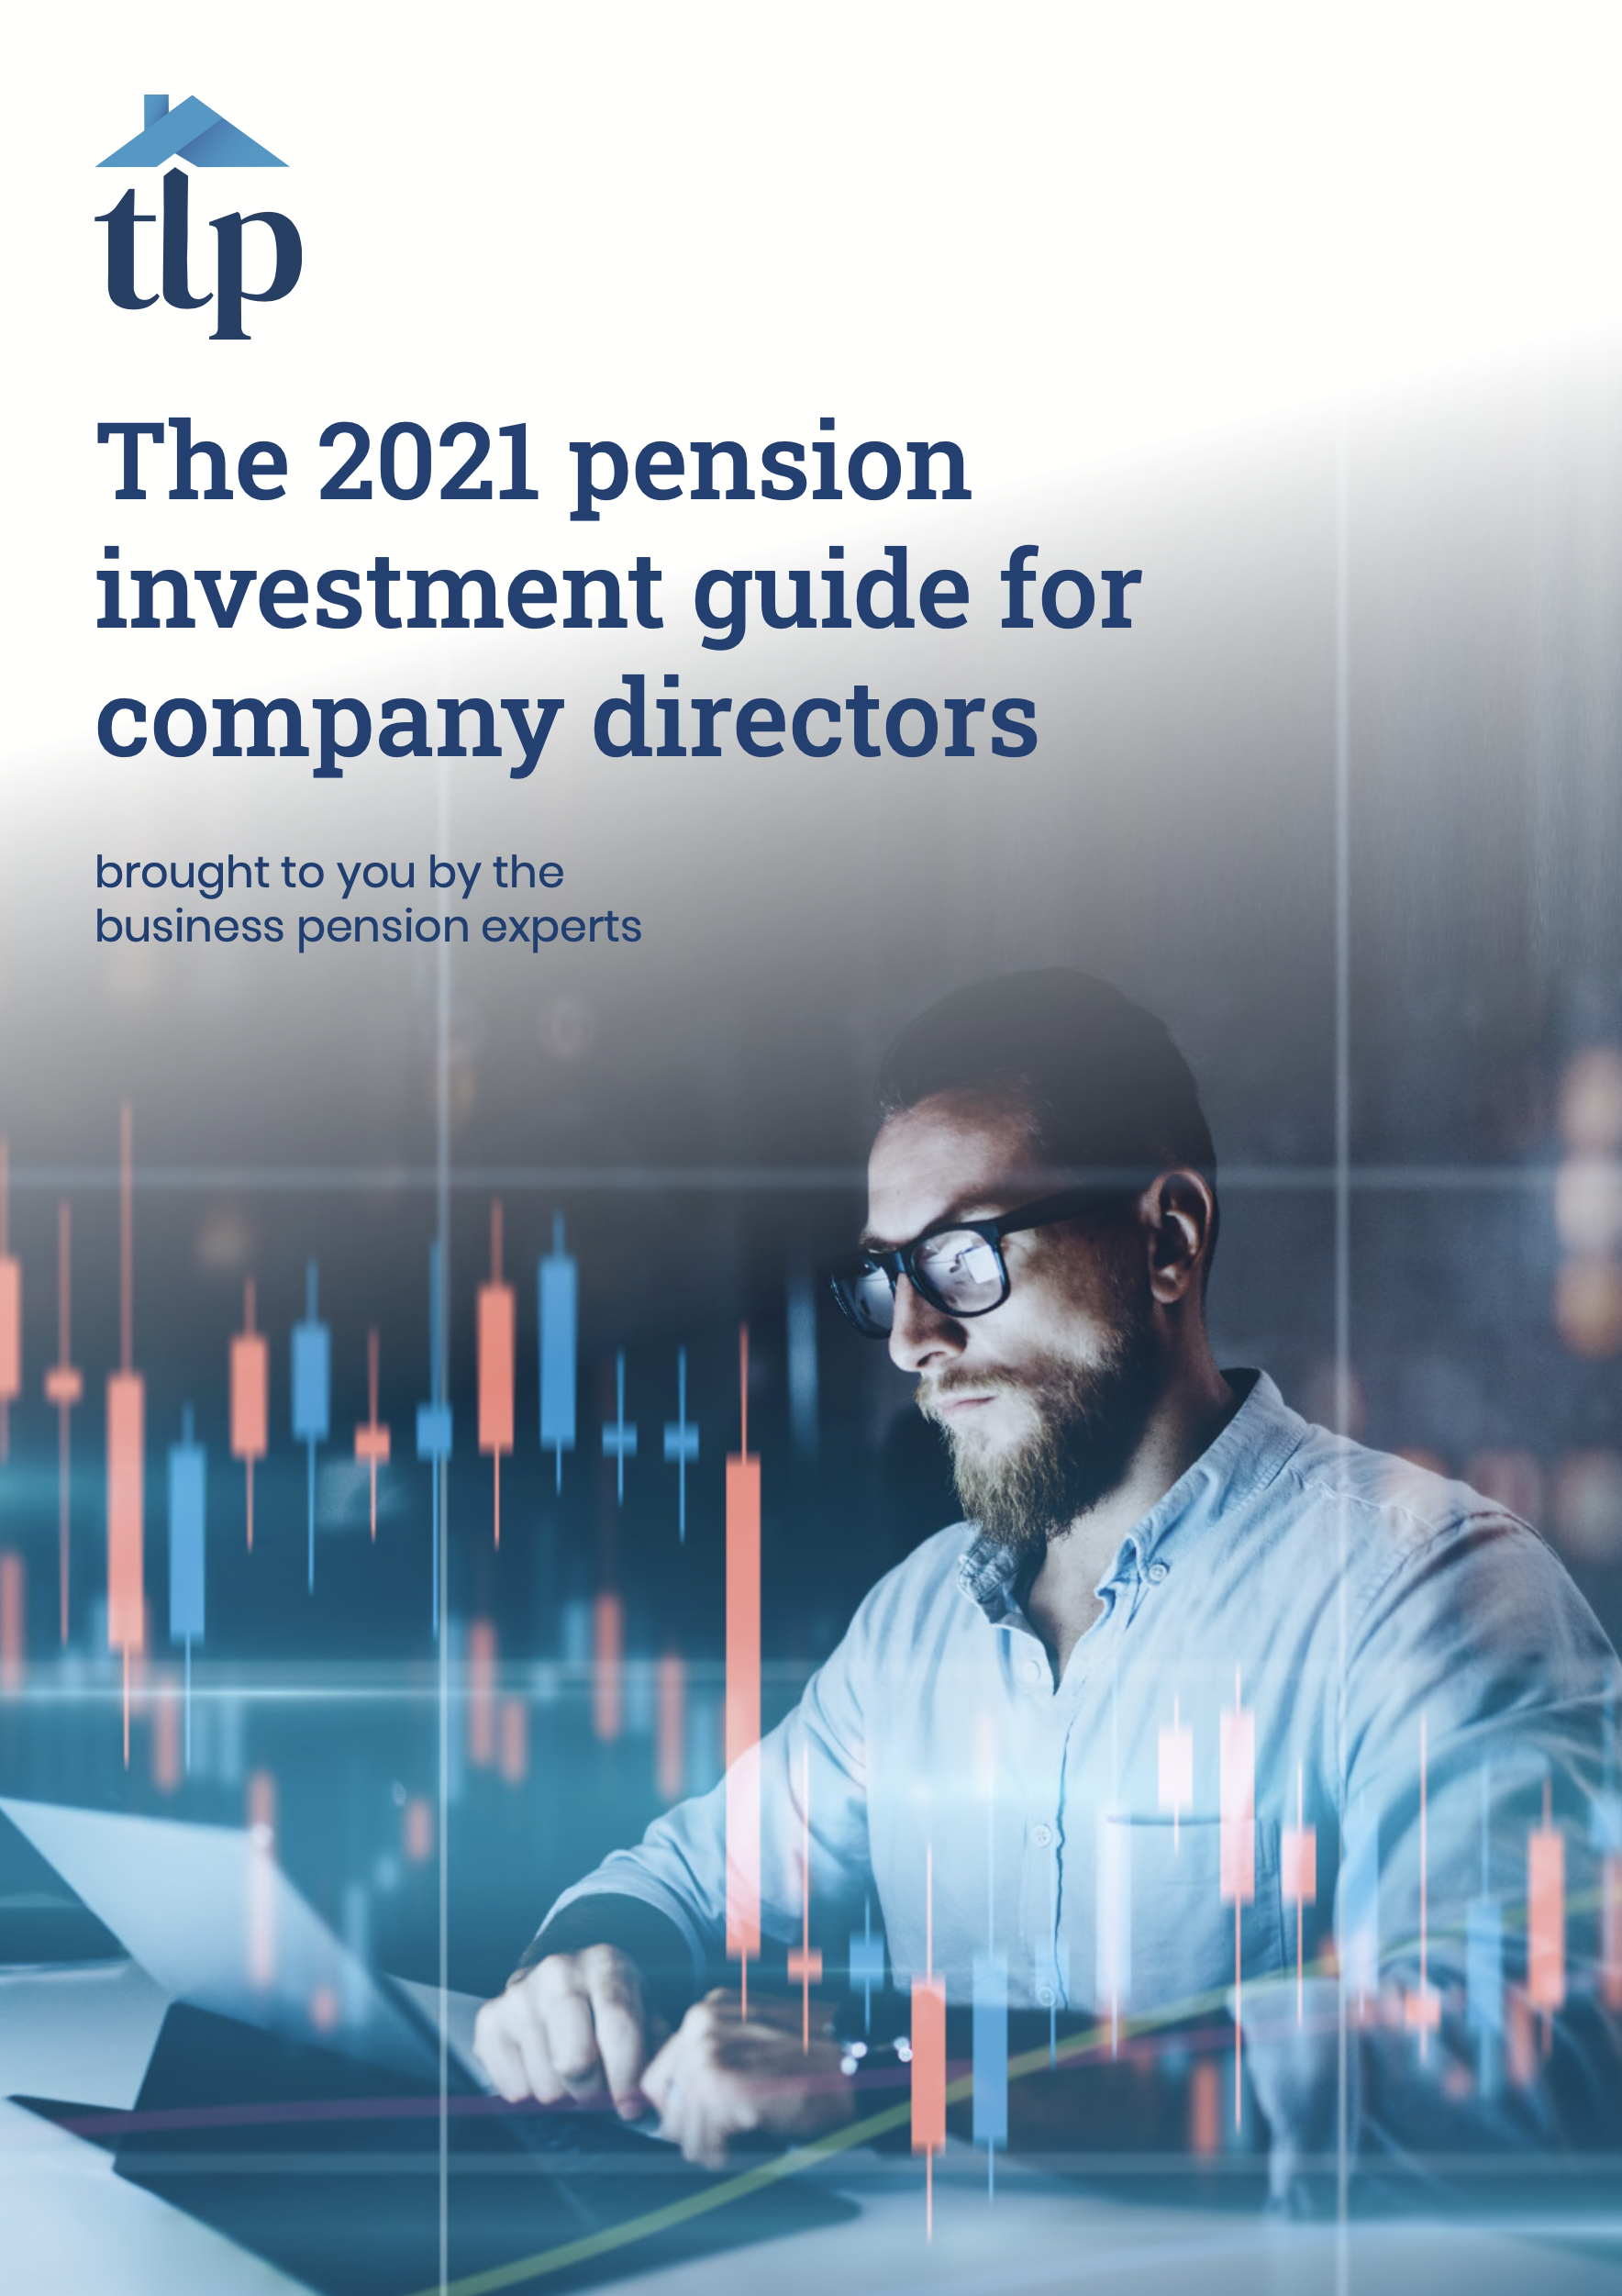 Front cover of The 2021 pension investment guide for company directors